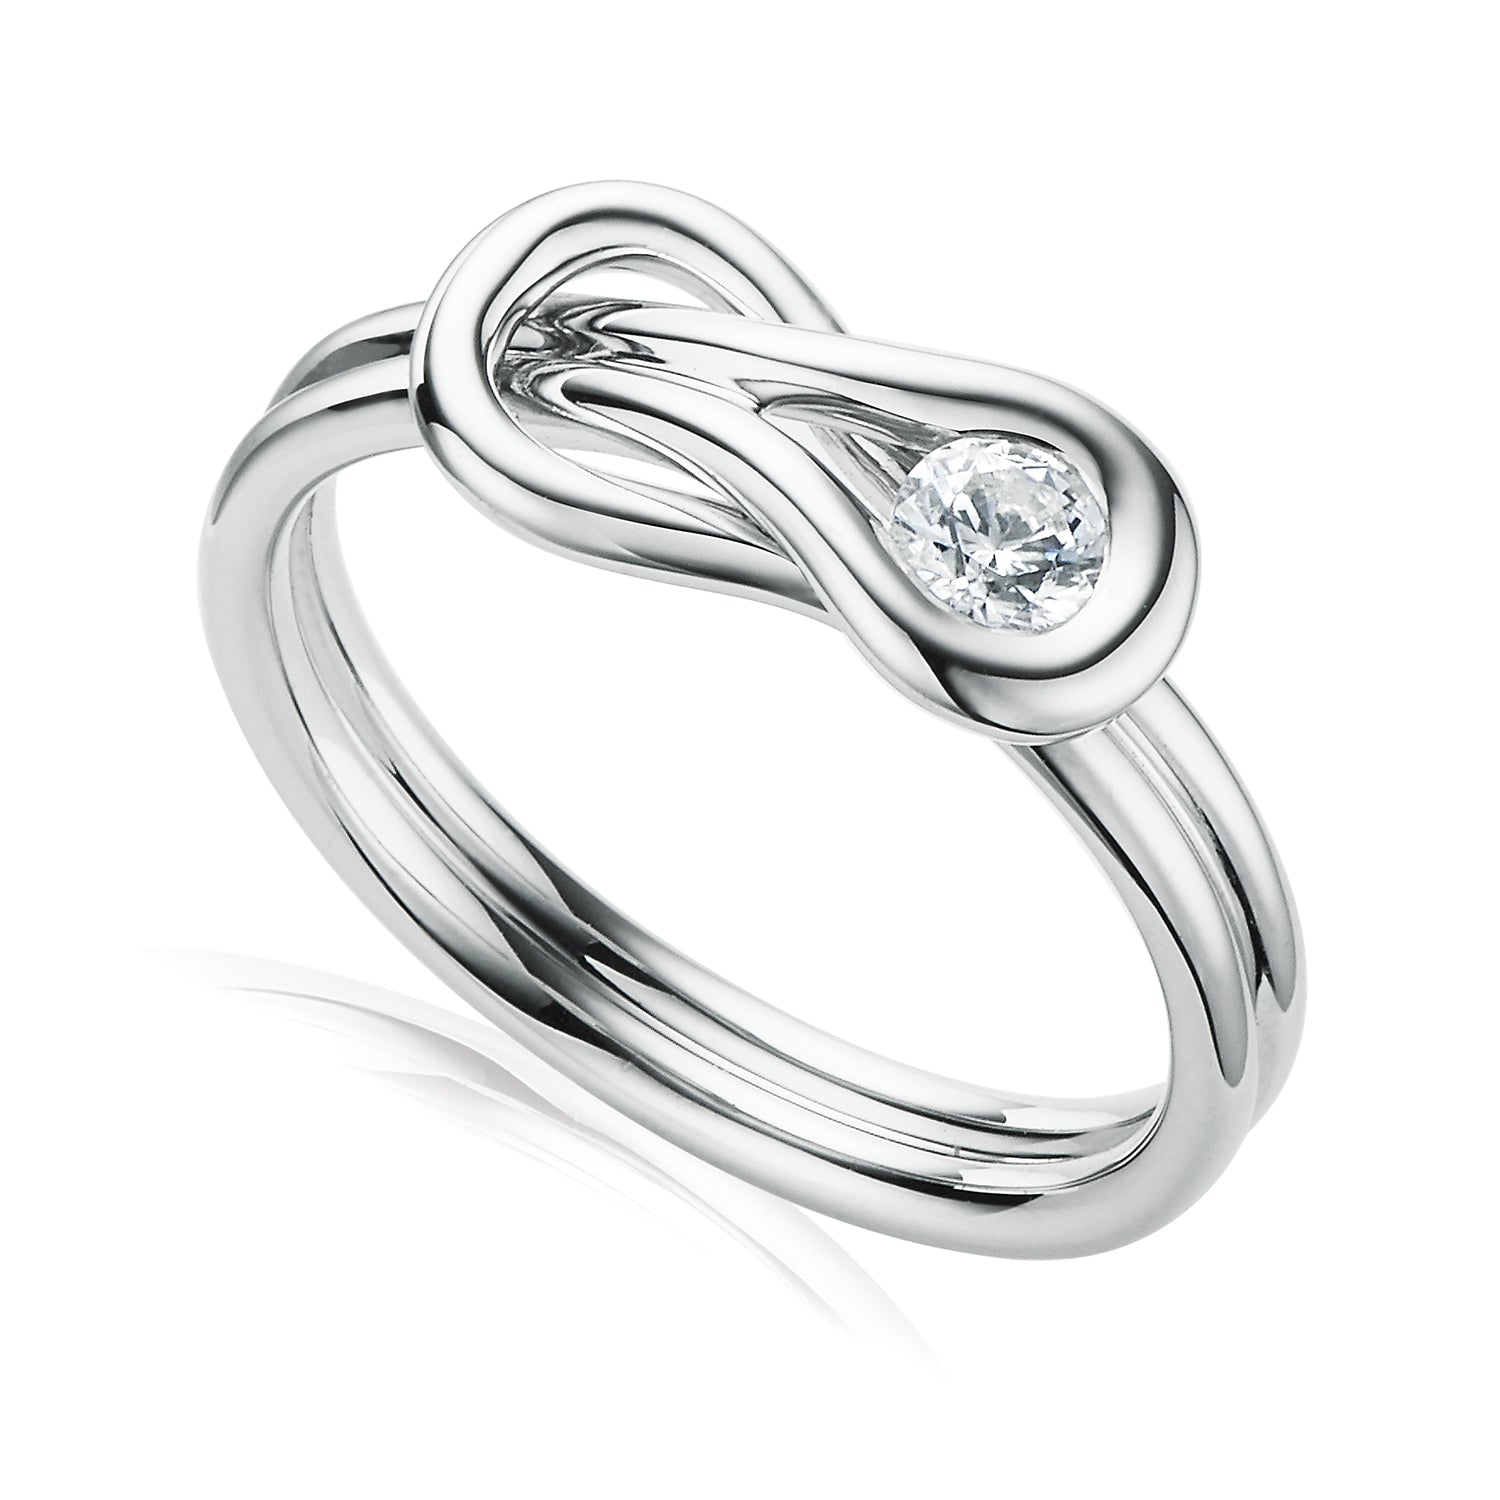 Forevermark 18ct White Gold Round Brilliant Cut with 0.18 CARAT of Diamonds